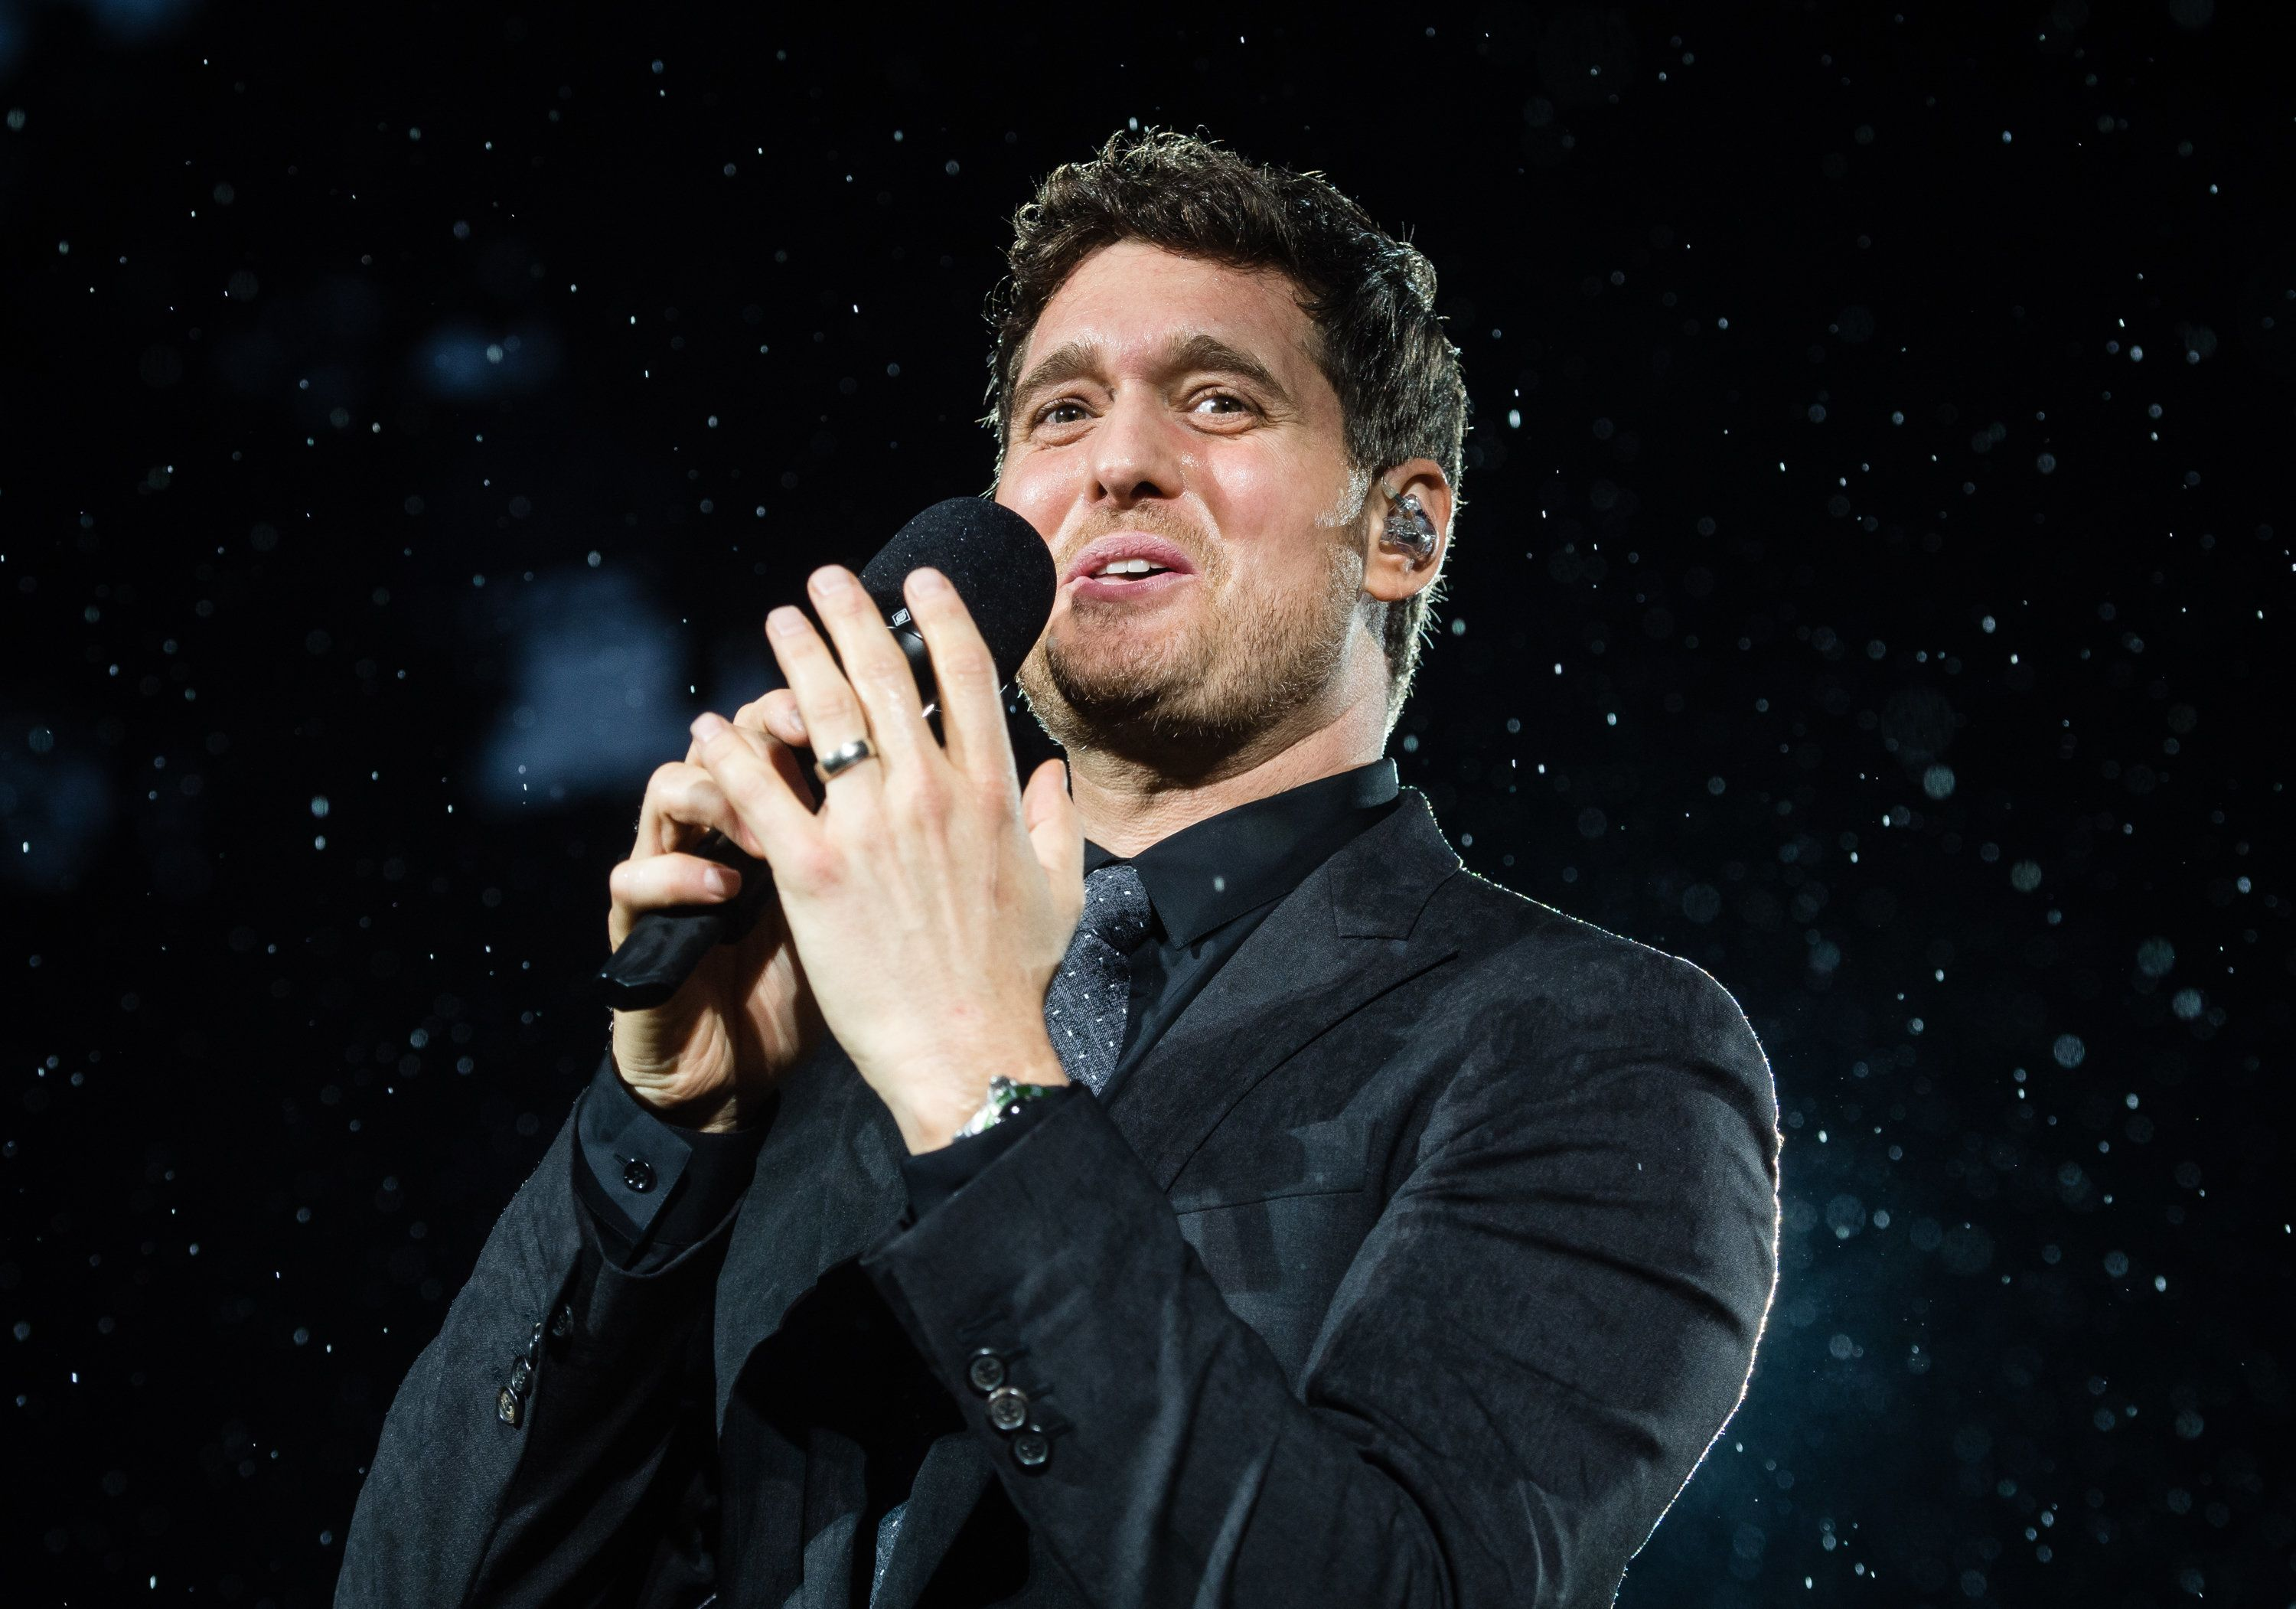 Michael Buble performs live at Barclaycard present British Summer Time Hyde Park at Hyde